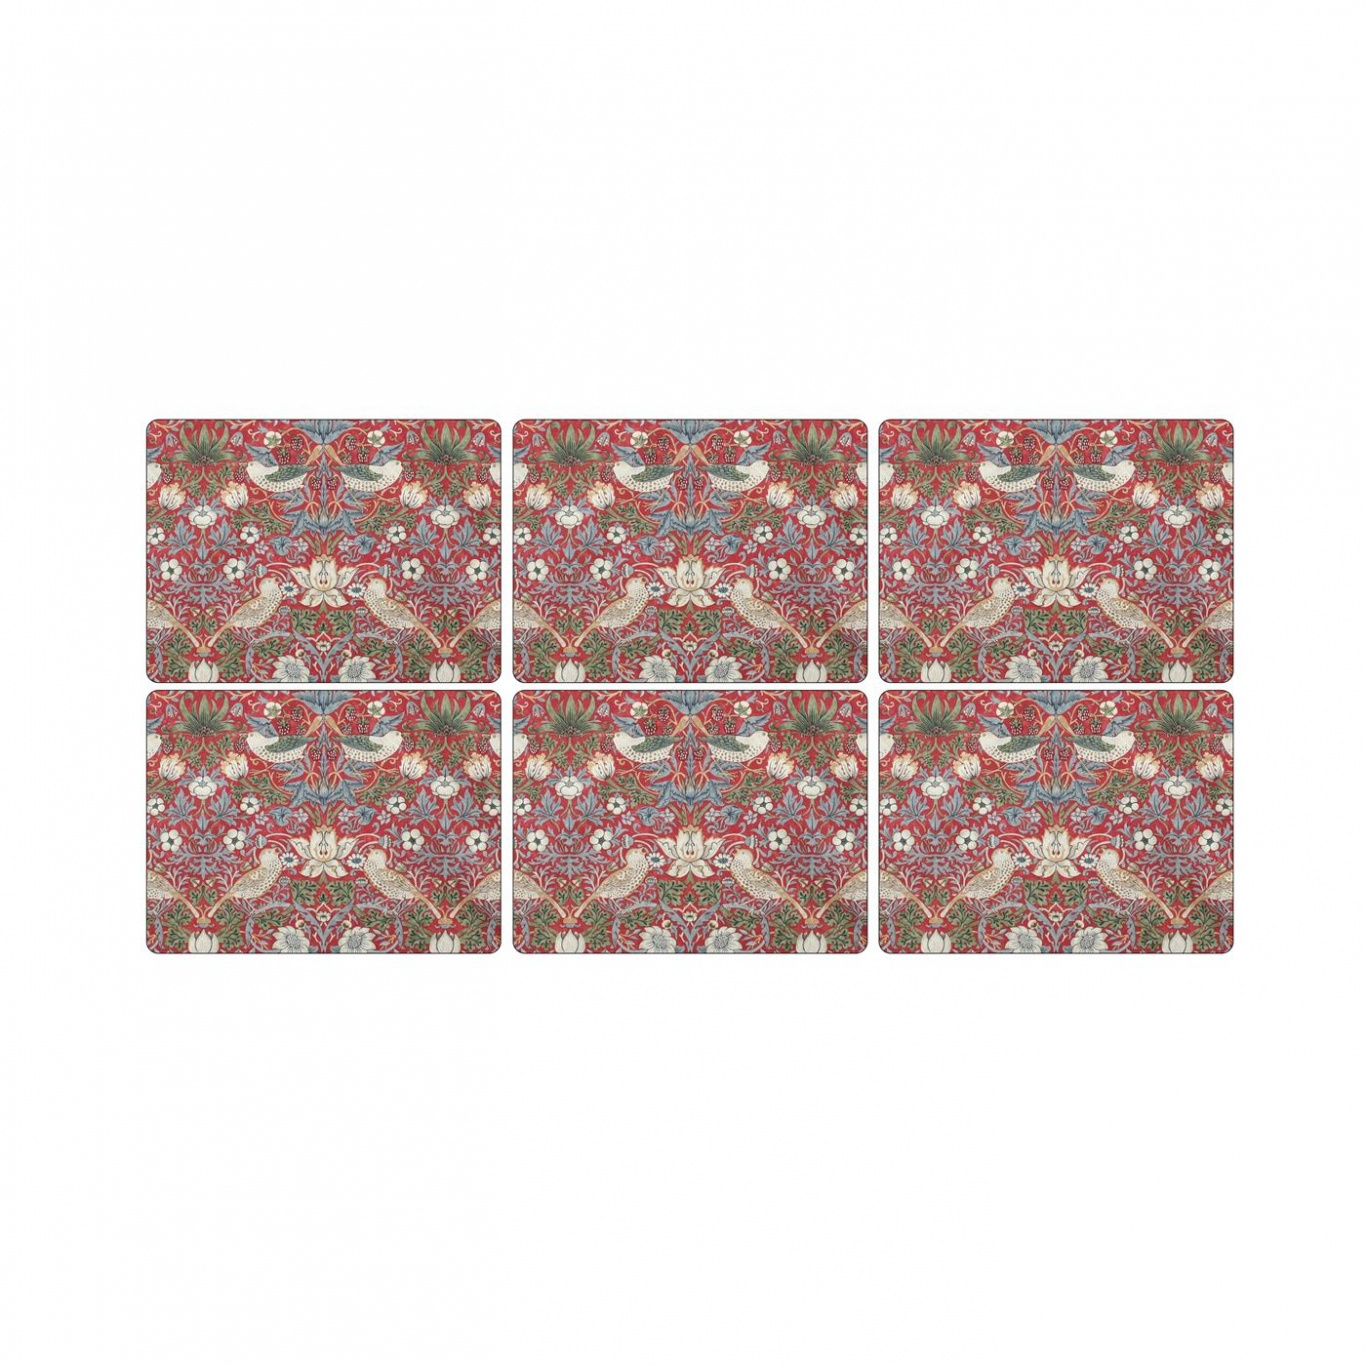 Image of  Pimpernel Strawberry Thief Red Placemats set of 6